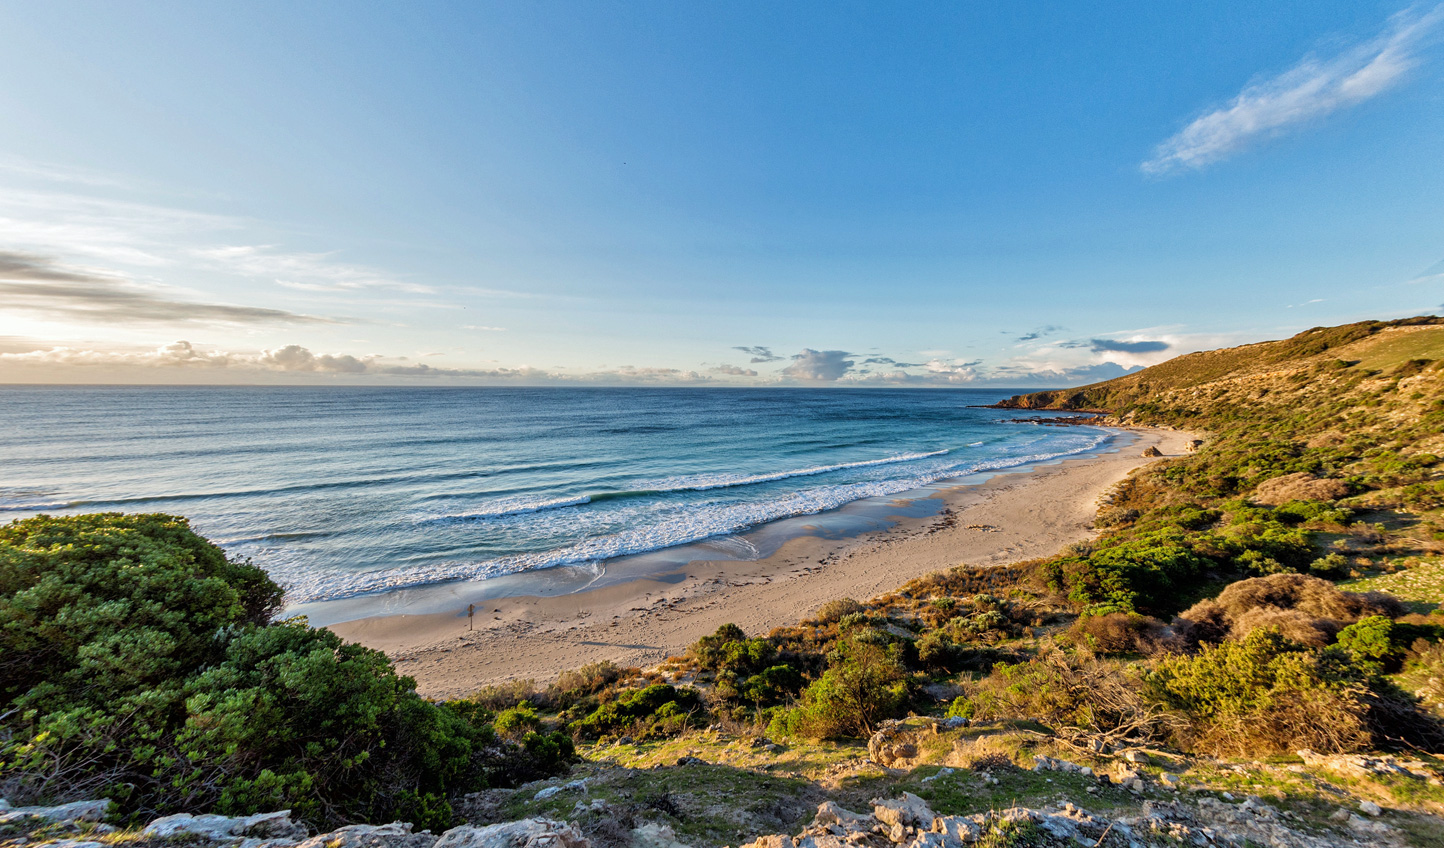 Take a walk along the sandy beaches of Kangaroo Island